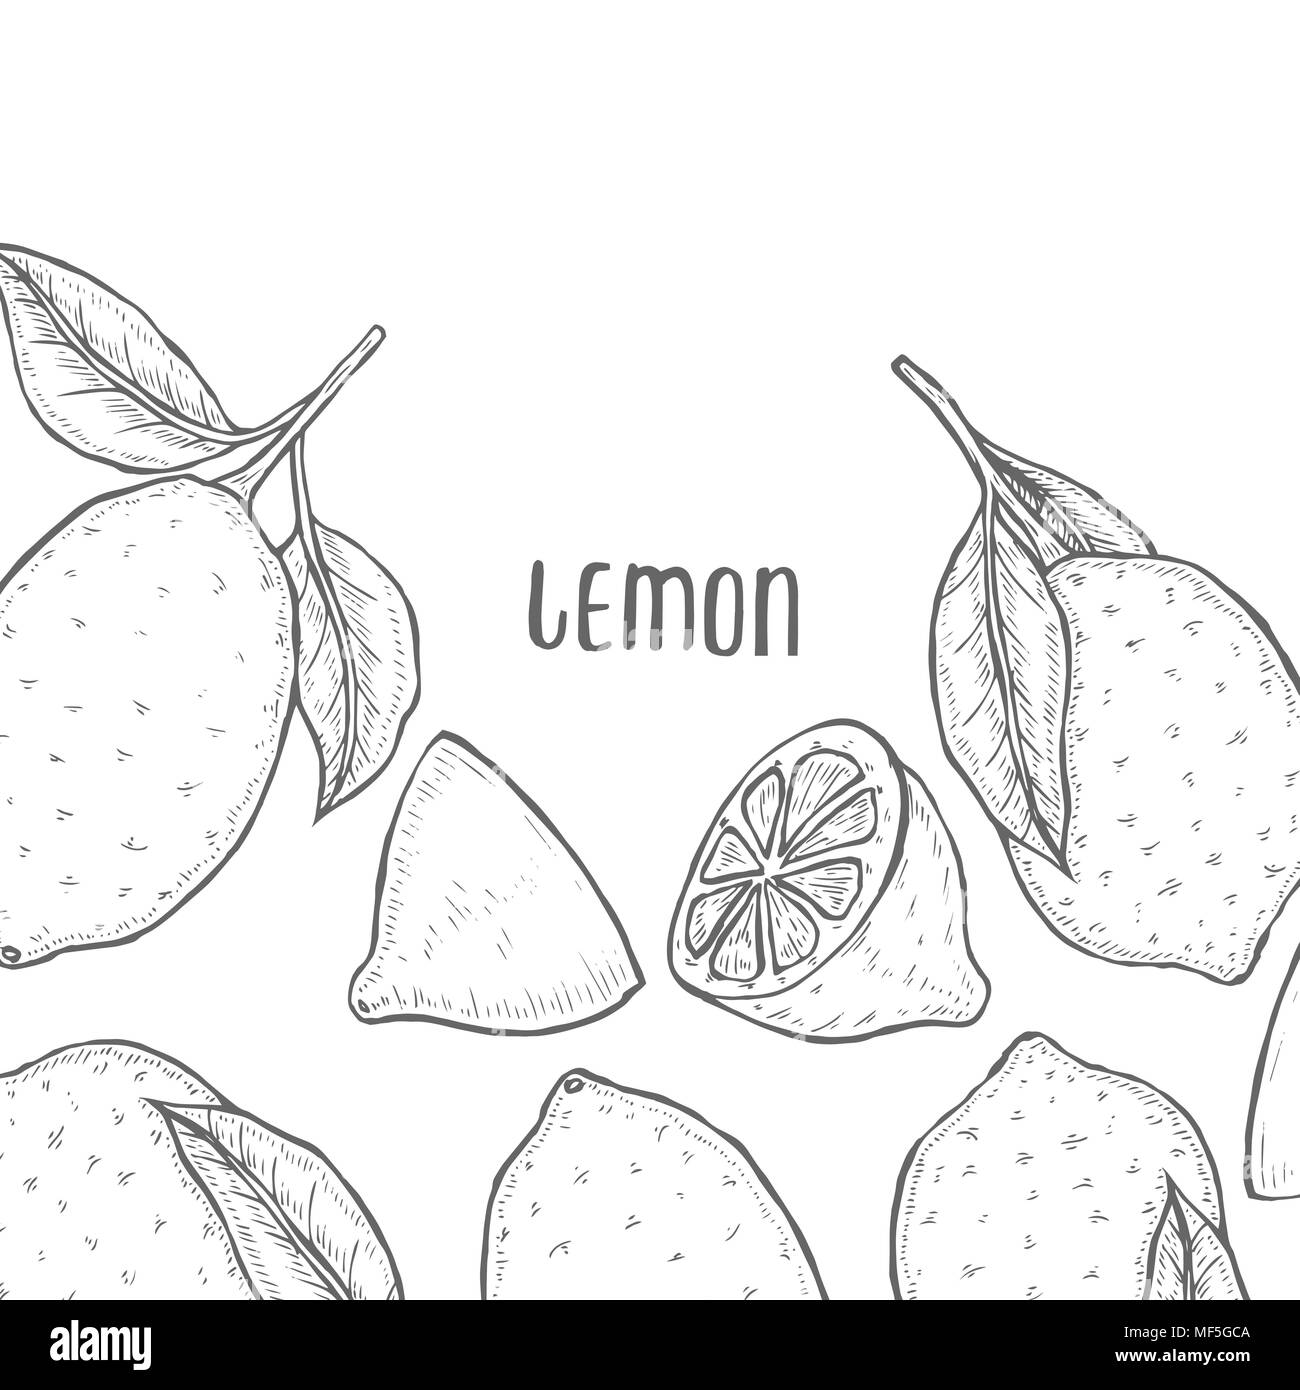 Vector oranges hand drawn sketch. Sketch vector food lemon illustration. Vintage style - Stock Image